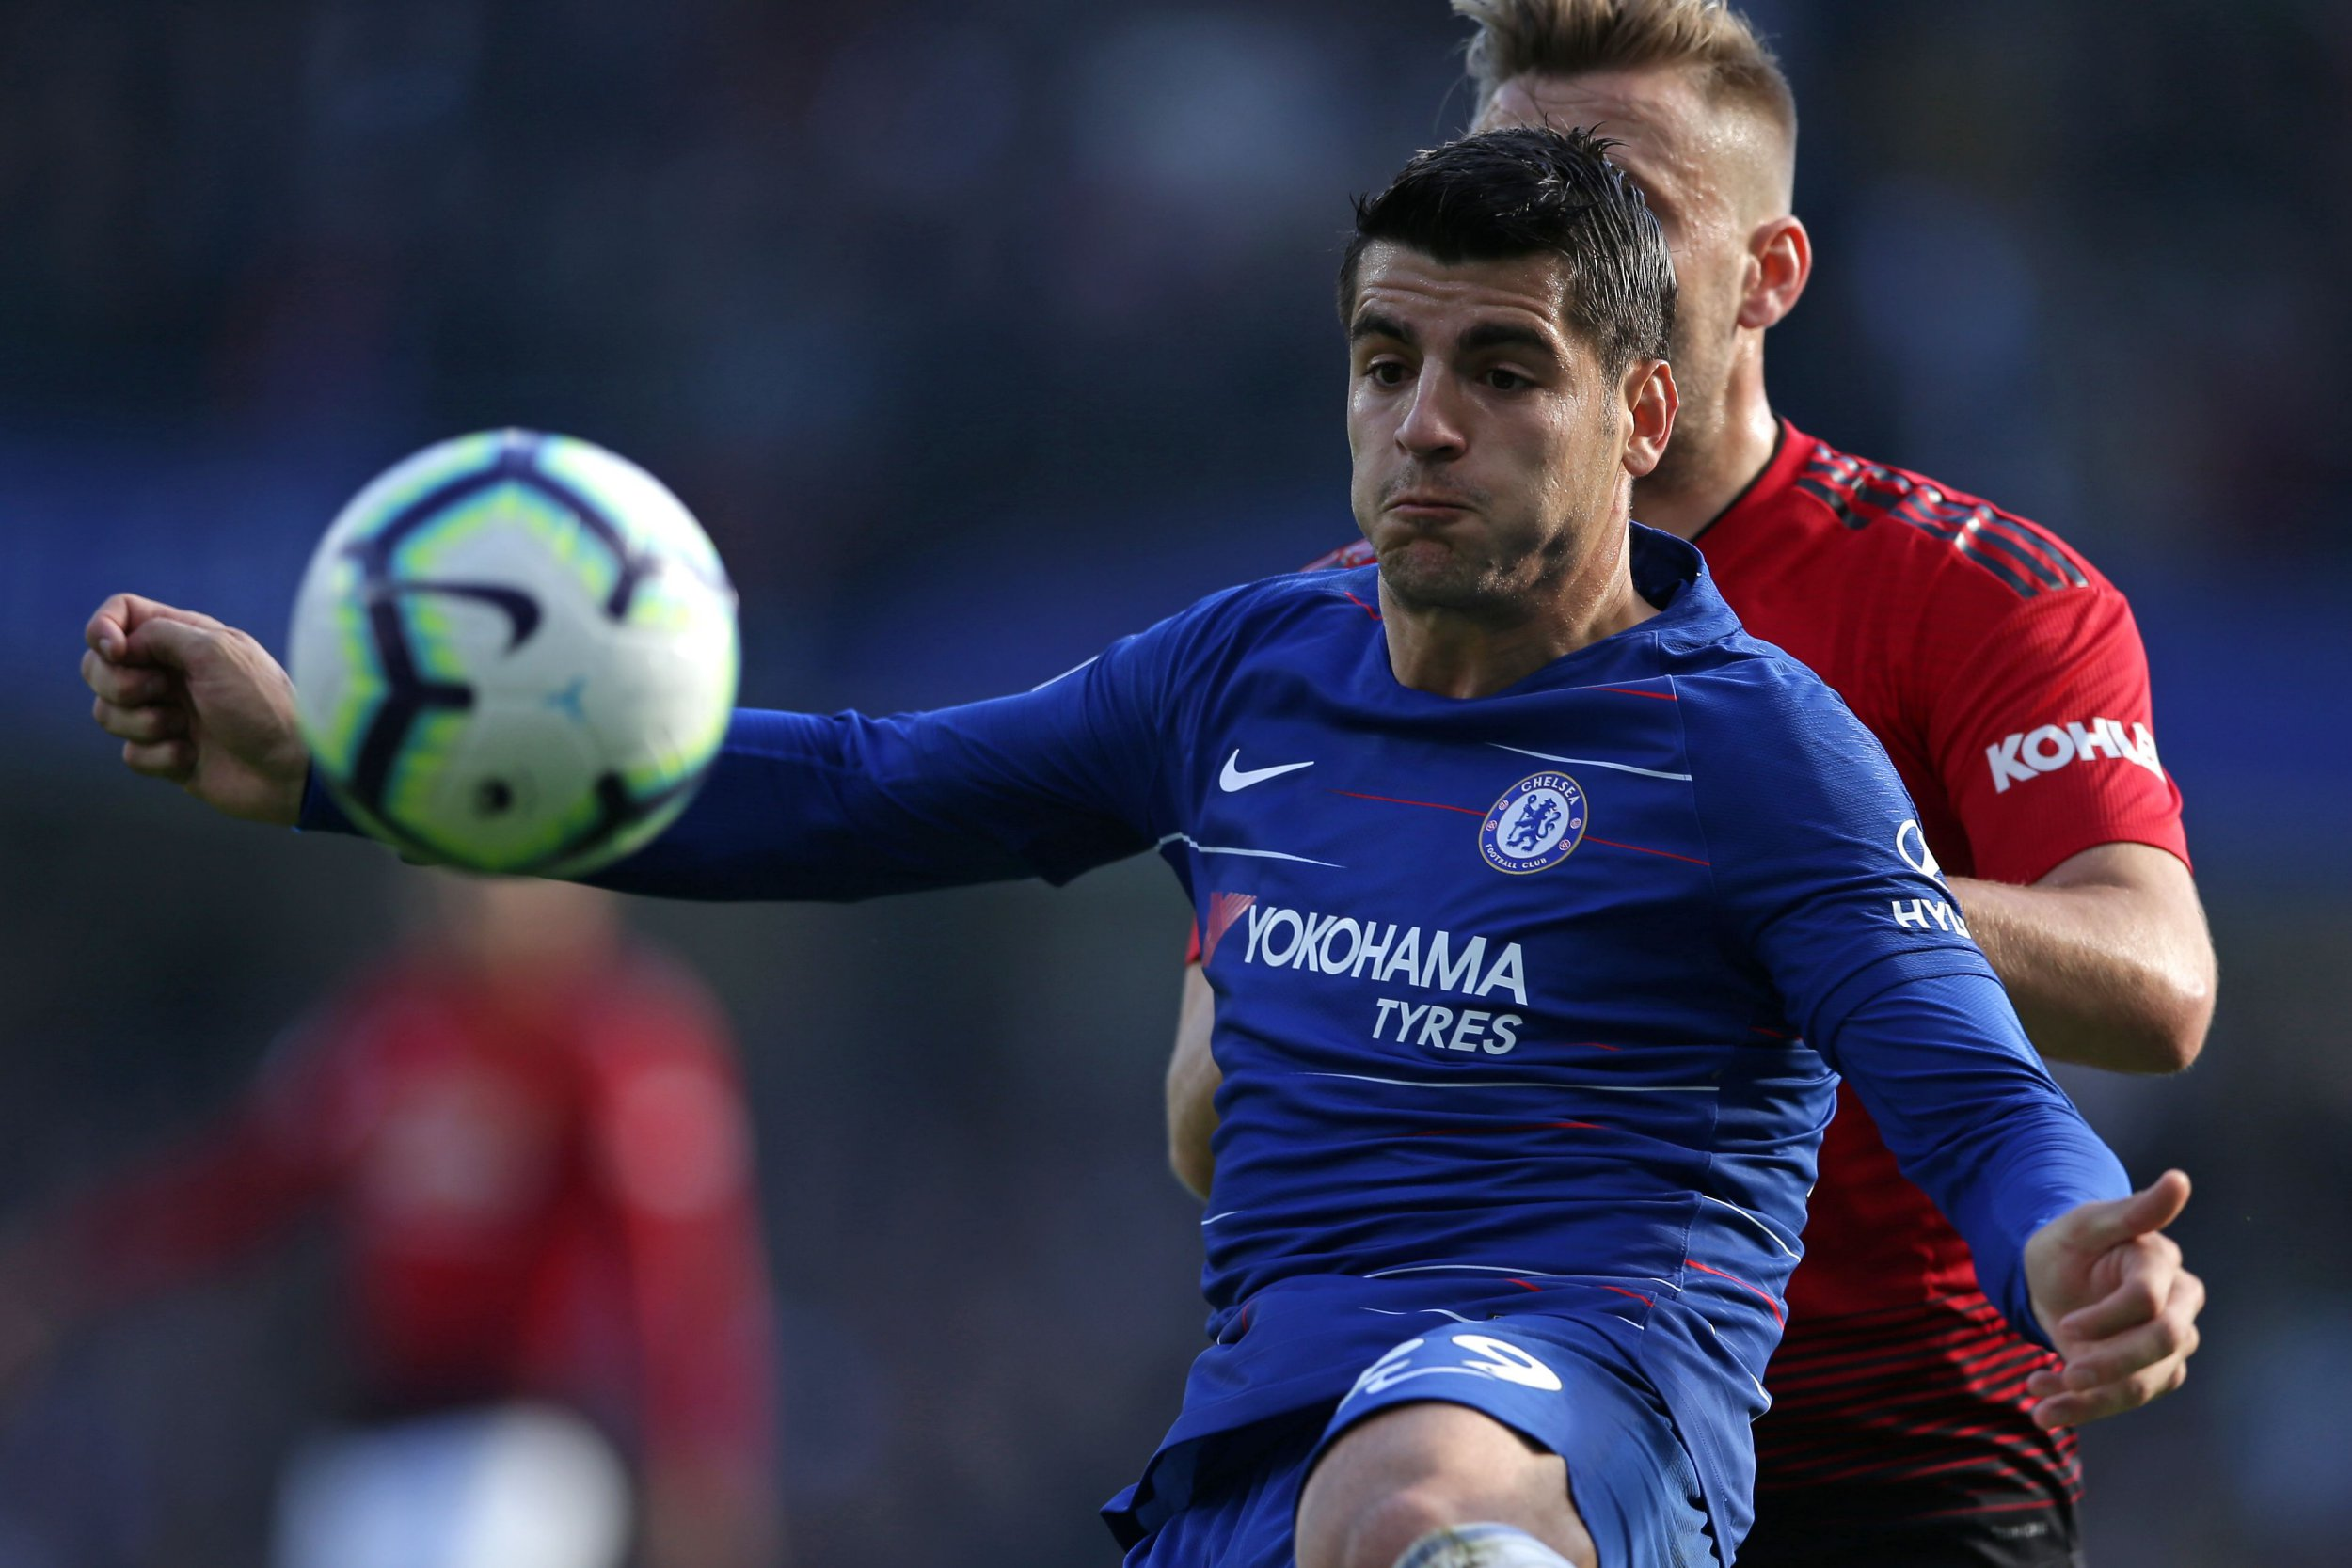 Chelsea's Spanish striker Alvaro Morata controls the ball during the English Premier League football match between Chelsea and Manchester United at Stamford Bridge in London on October 20, 2018. (Photo by Daniel LEAL-OLIVAS / AFP) / RESTRICTED TO EDITORIAL USE. No use with unauthorized audio, video, data, fixture lists, club/league logos or 'live' services. Online in-match use limited to 120 images. An additional 40 images may be used in extra time. No video emulation. Social media in-match use limited to 120 images. An additional 40 images may be used in extra time. No use in betting publications, games or single club/league/player publications. / DANIEL LEAL-OLIVAS/AFP/Getty Images